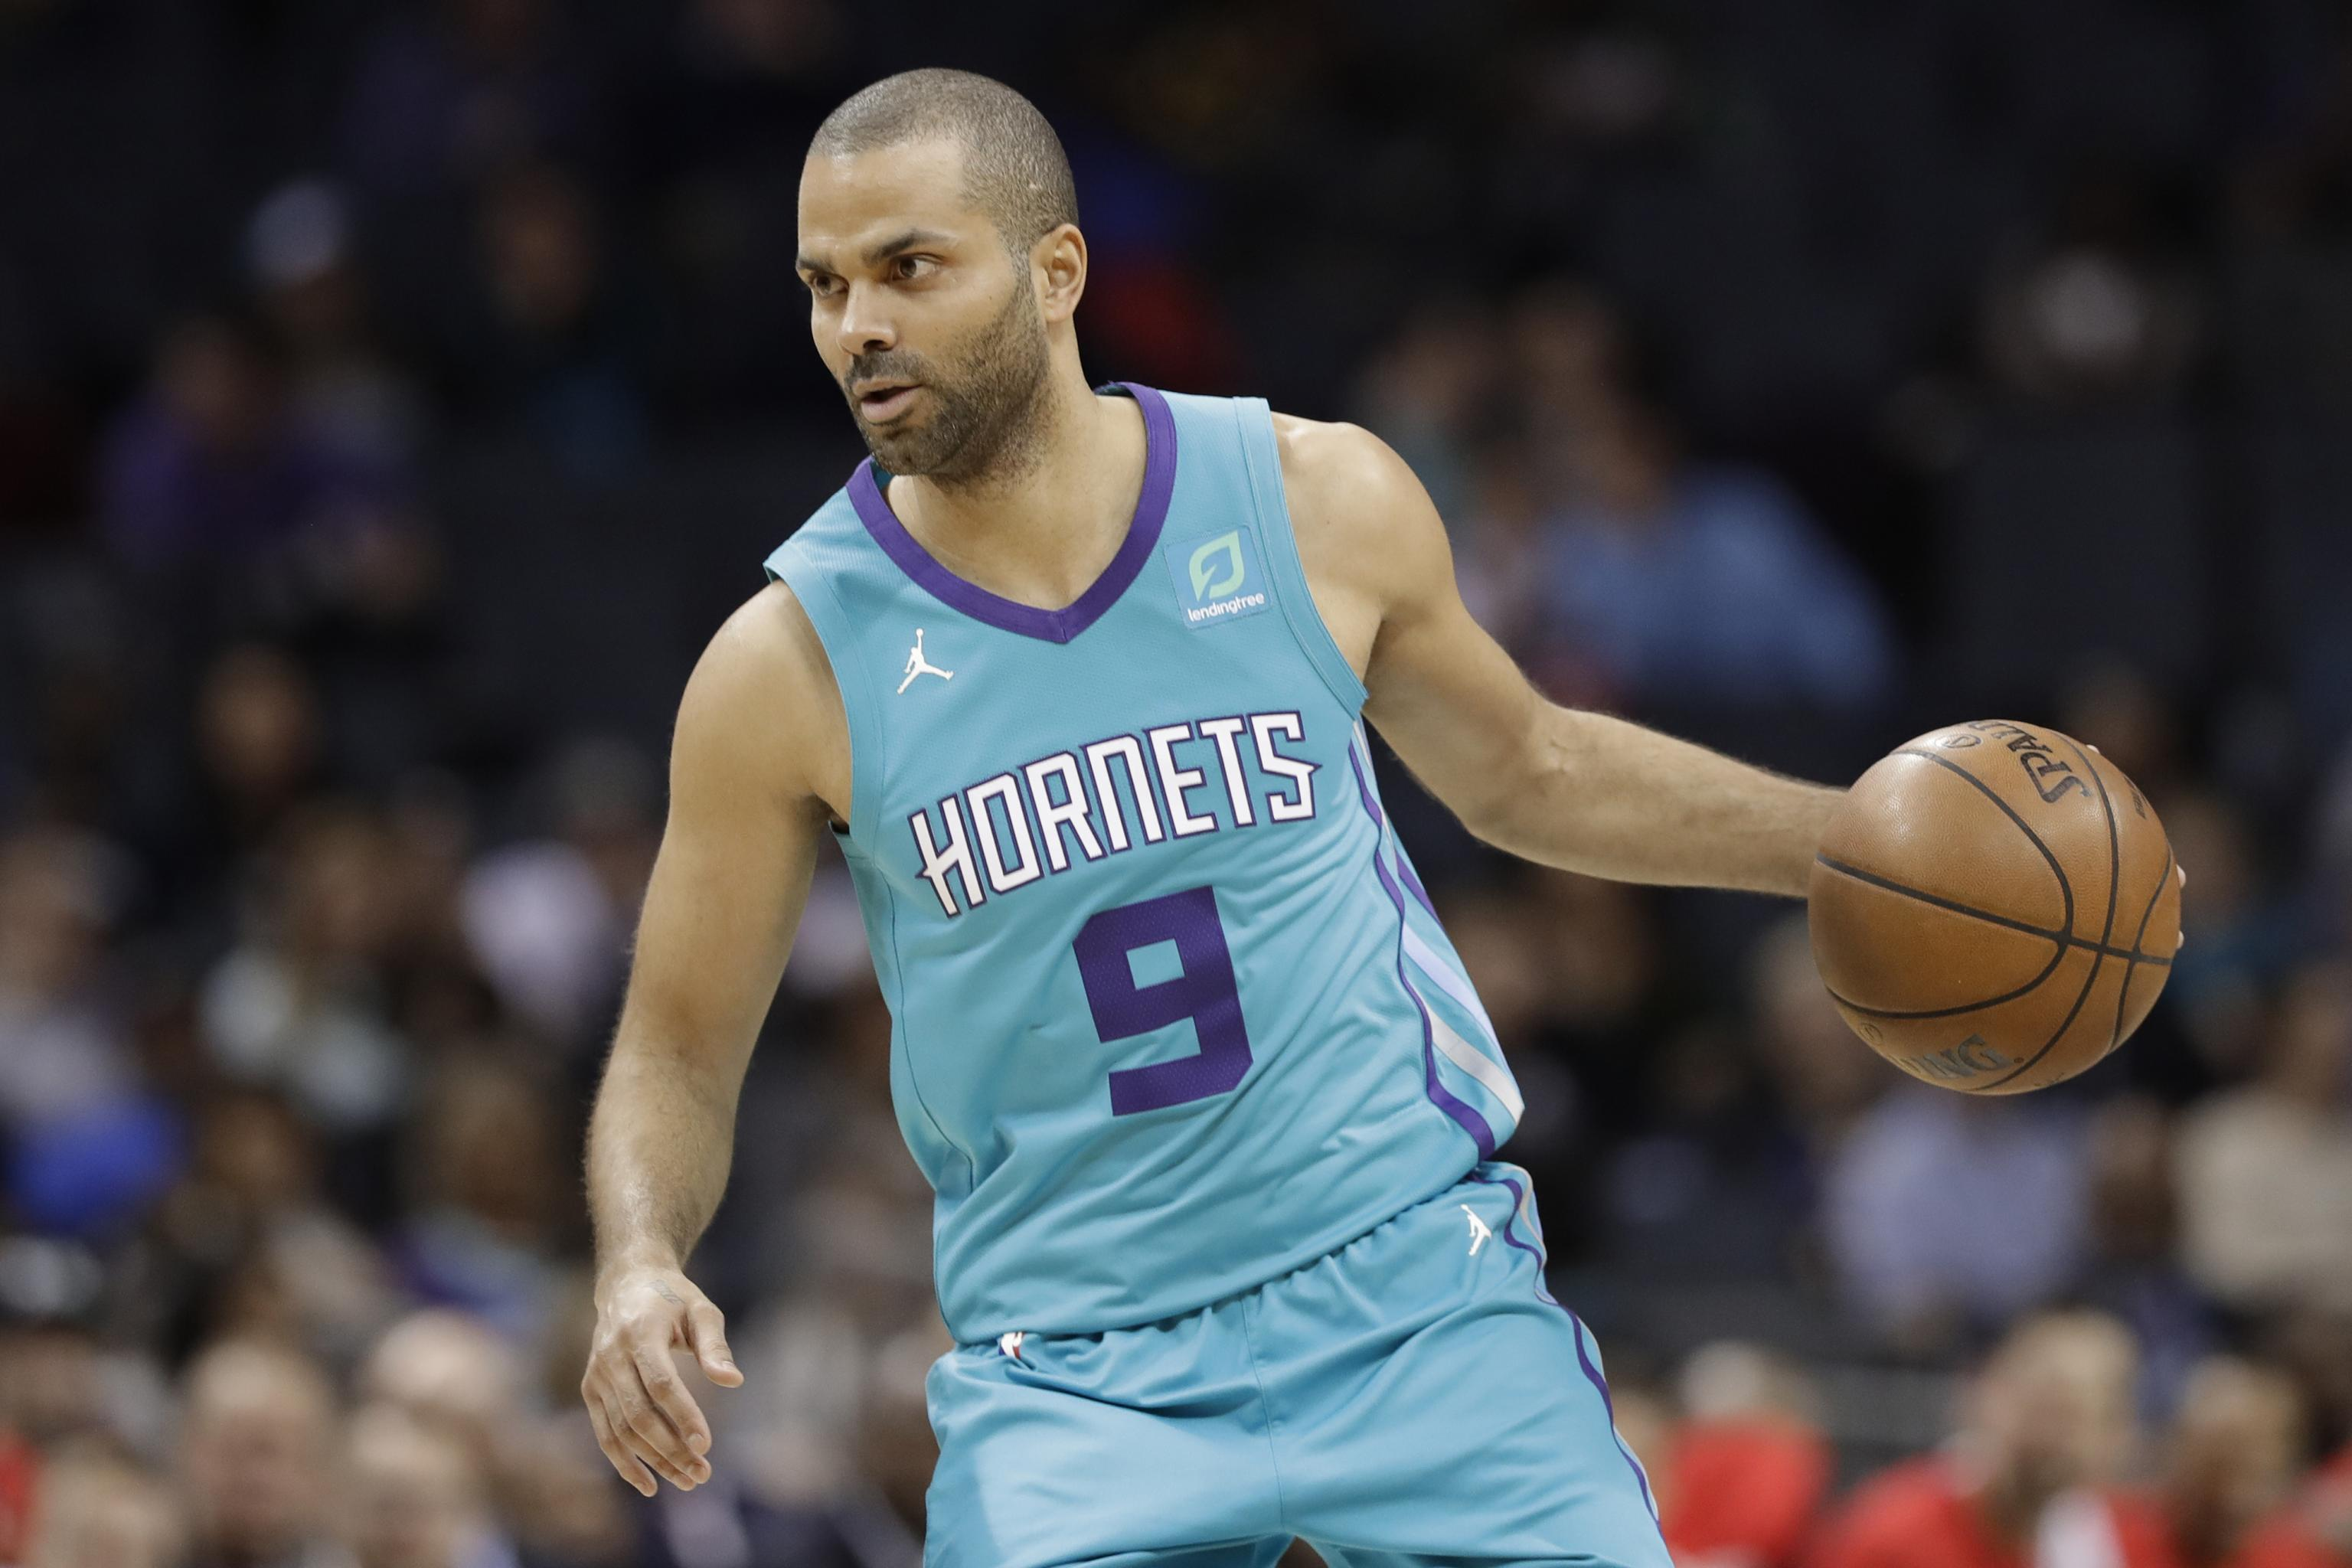 finest selection 12dad 9047b Hornets PG Tony Parker '50-50' on Retiring: 'I Haven't Made ...